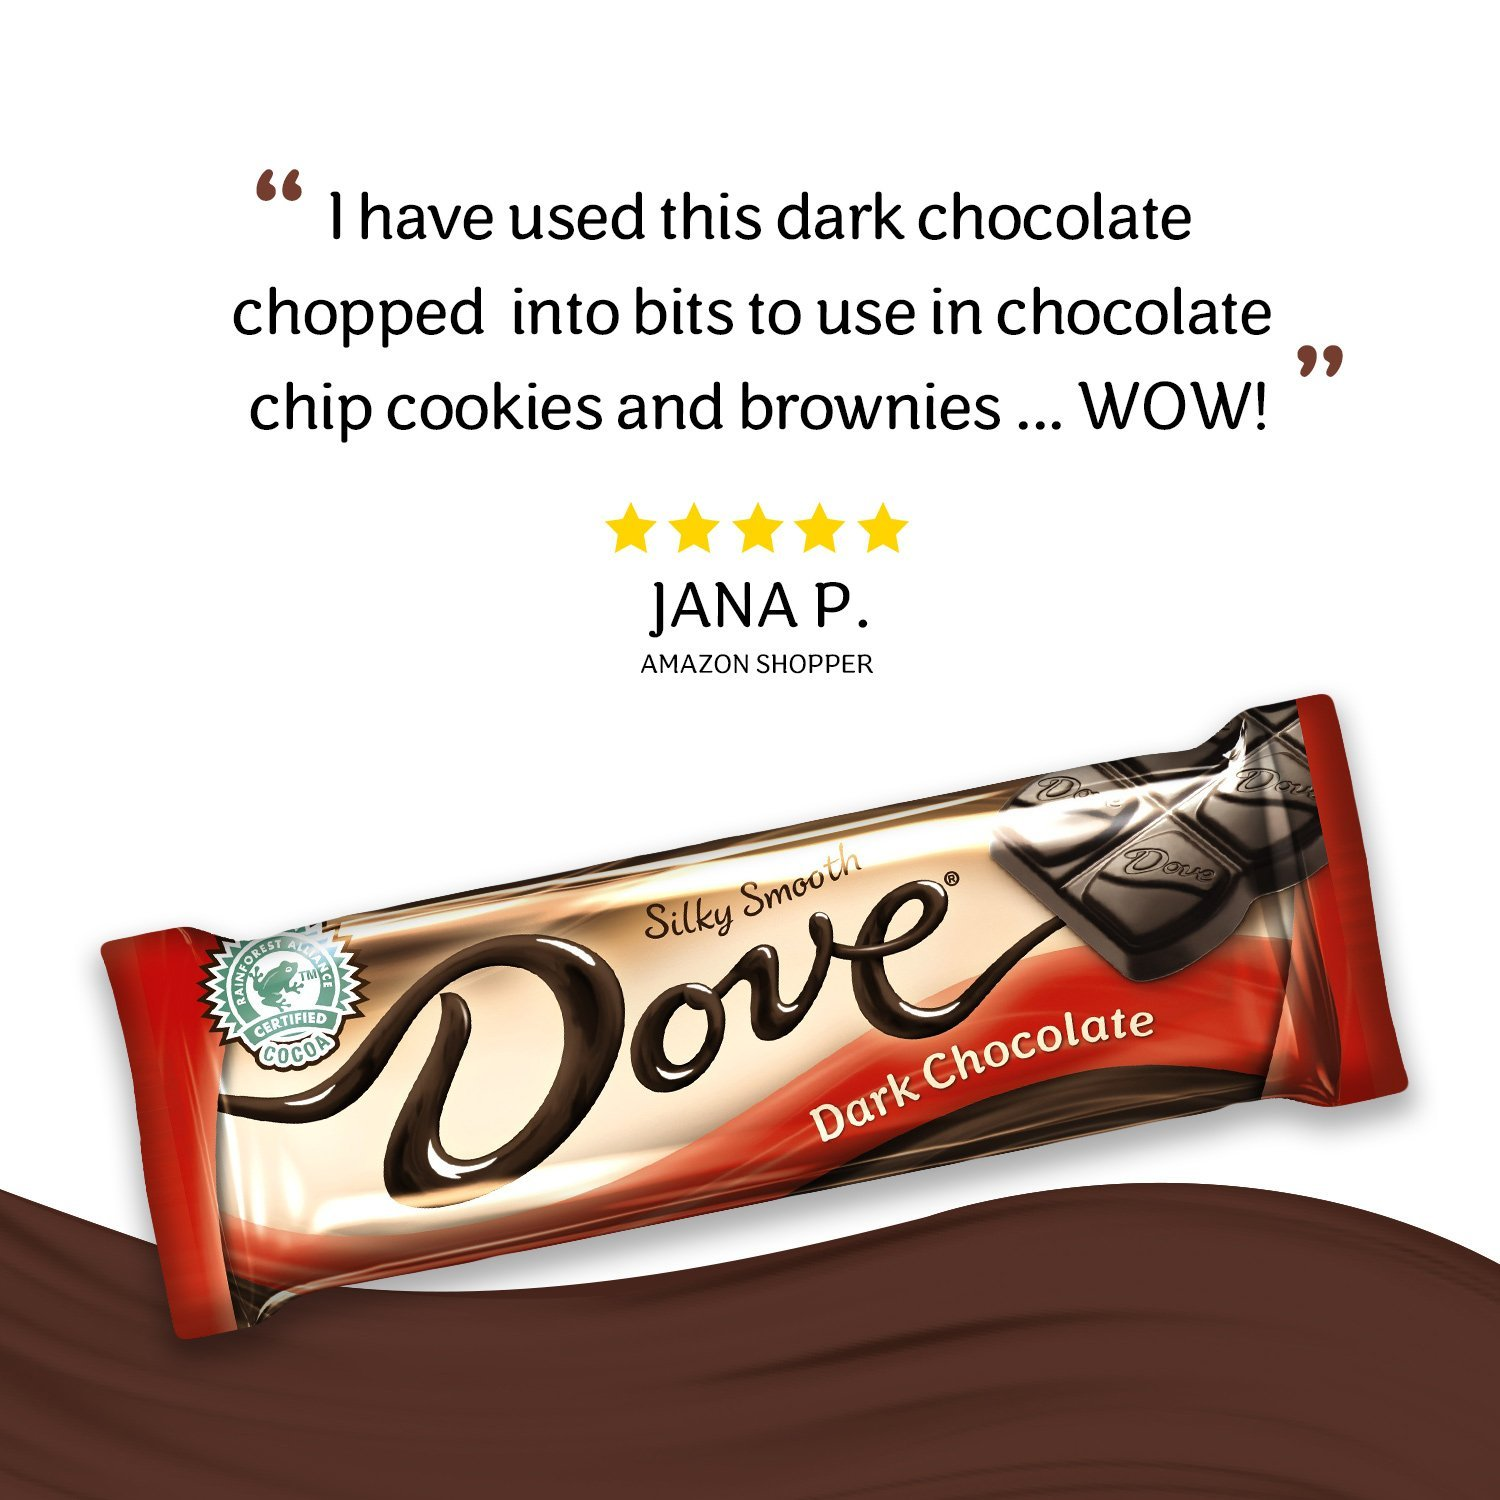 Amazon.com : DOVE Dark Chocolate Singles Size Candy Bar 1.44-Ounce ...